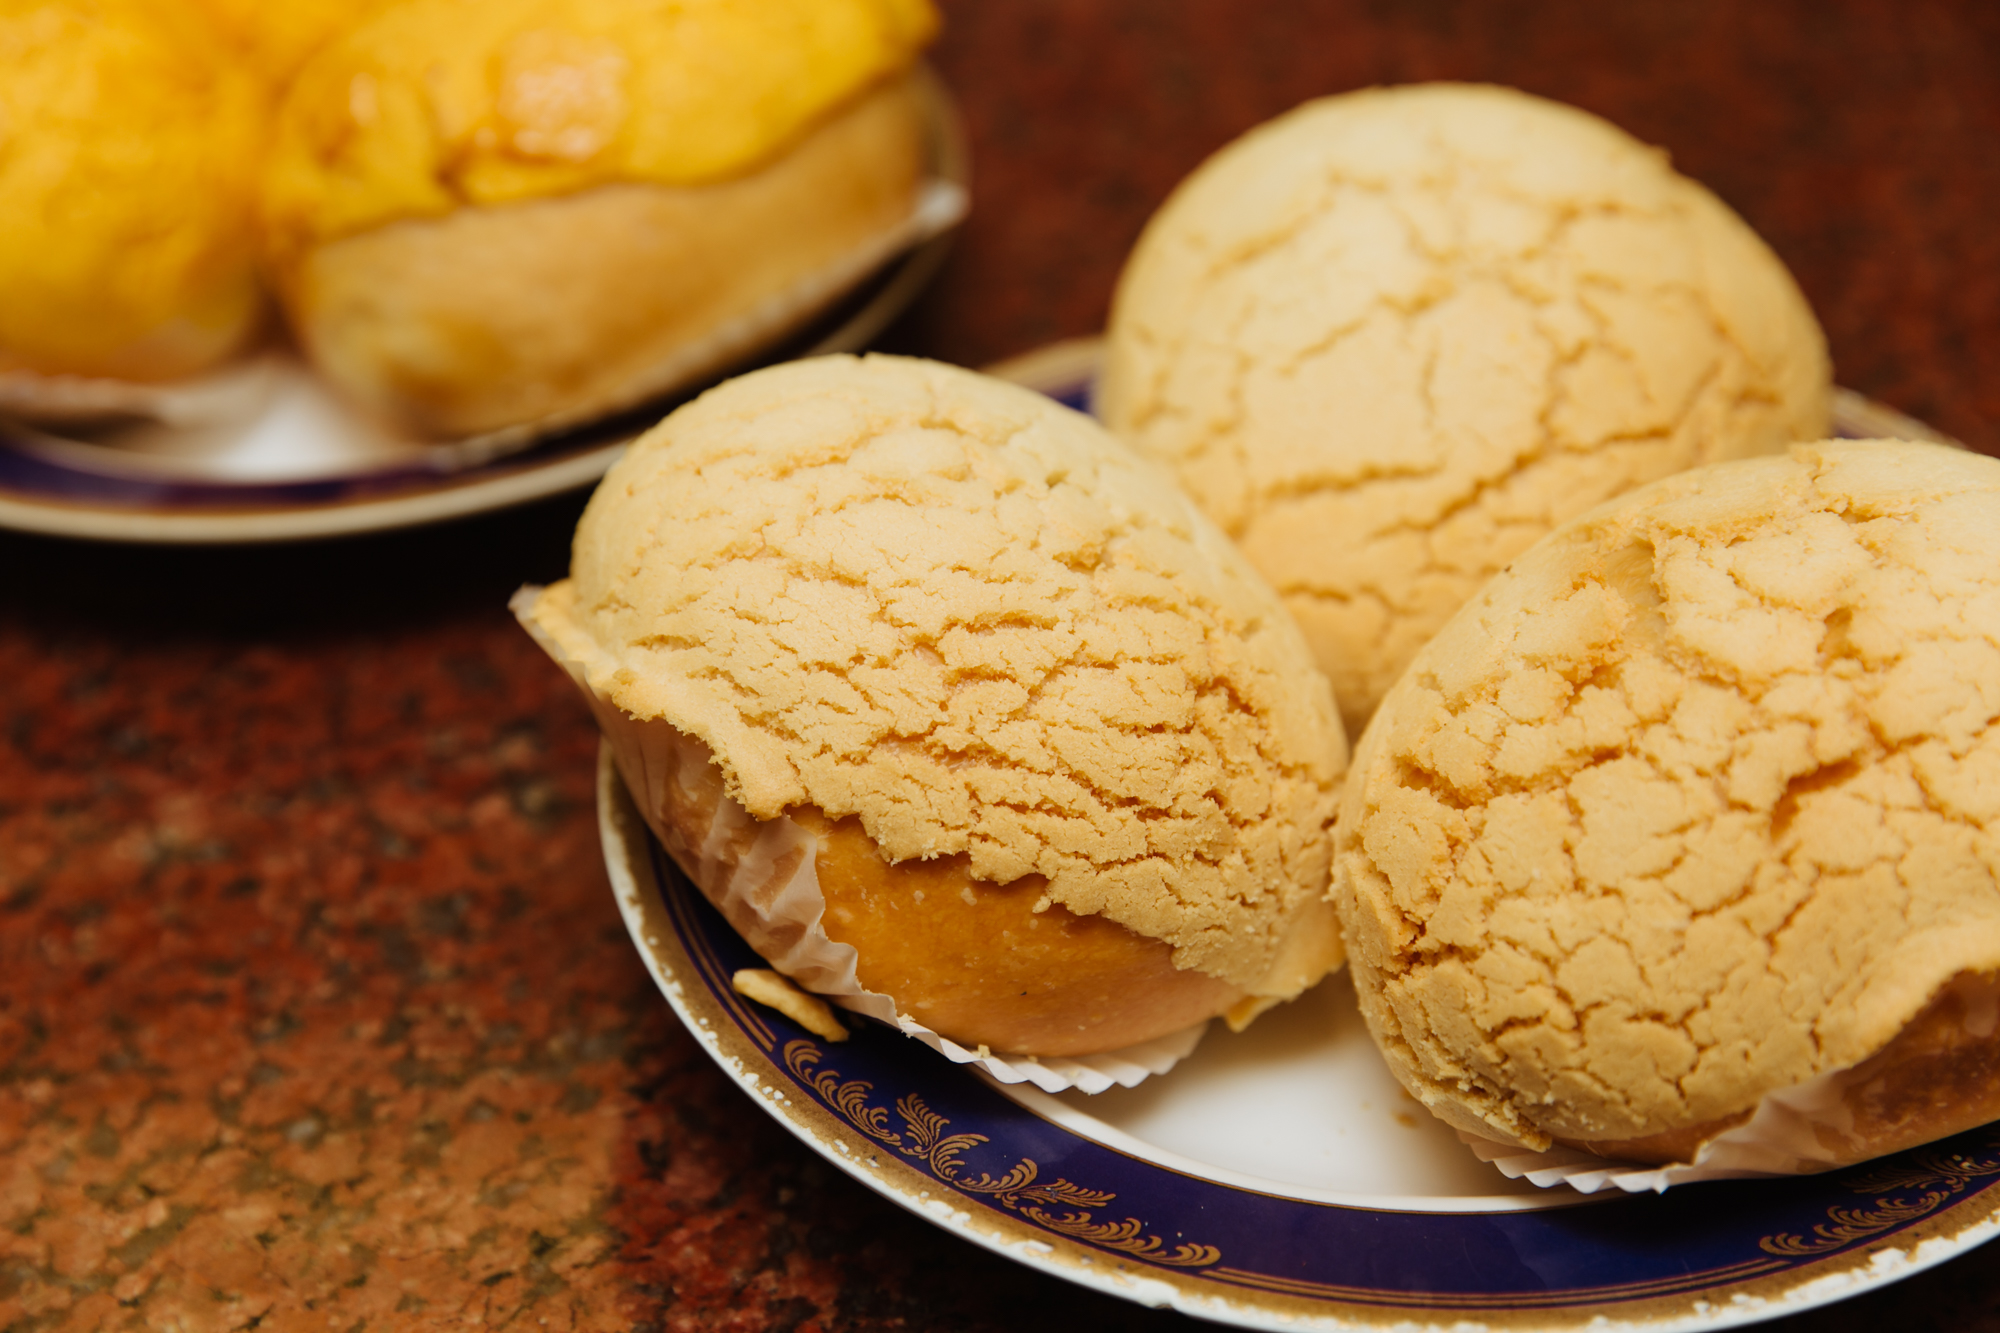 Pineapple buns got their name because the sweet crackled top resembles a pineapple exterior.